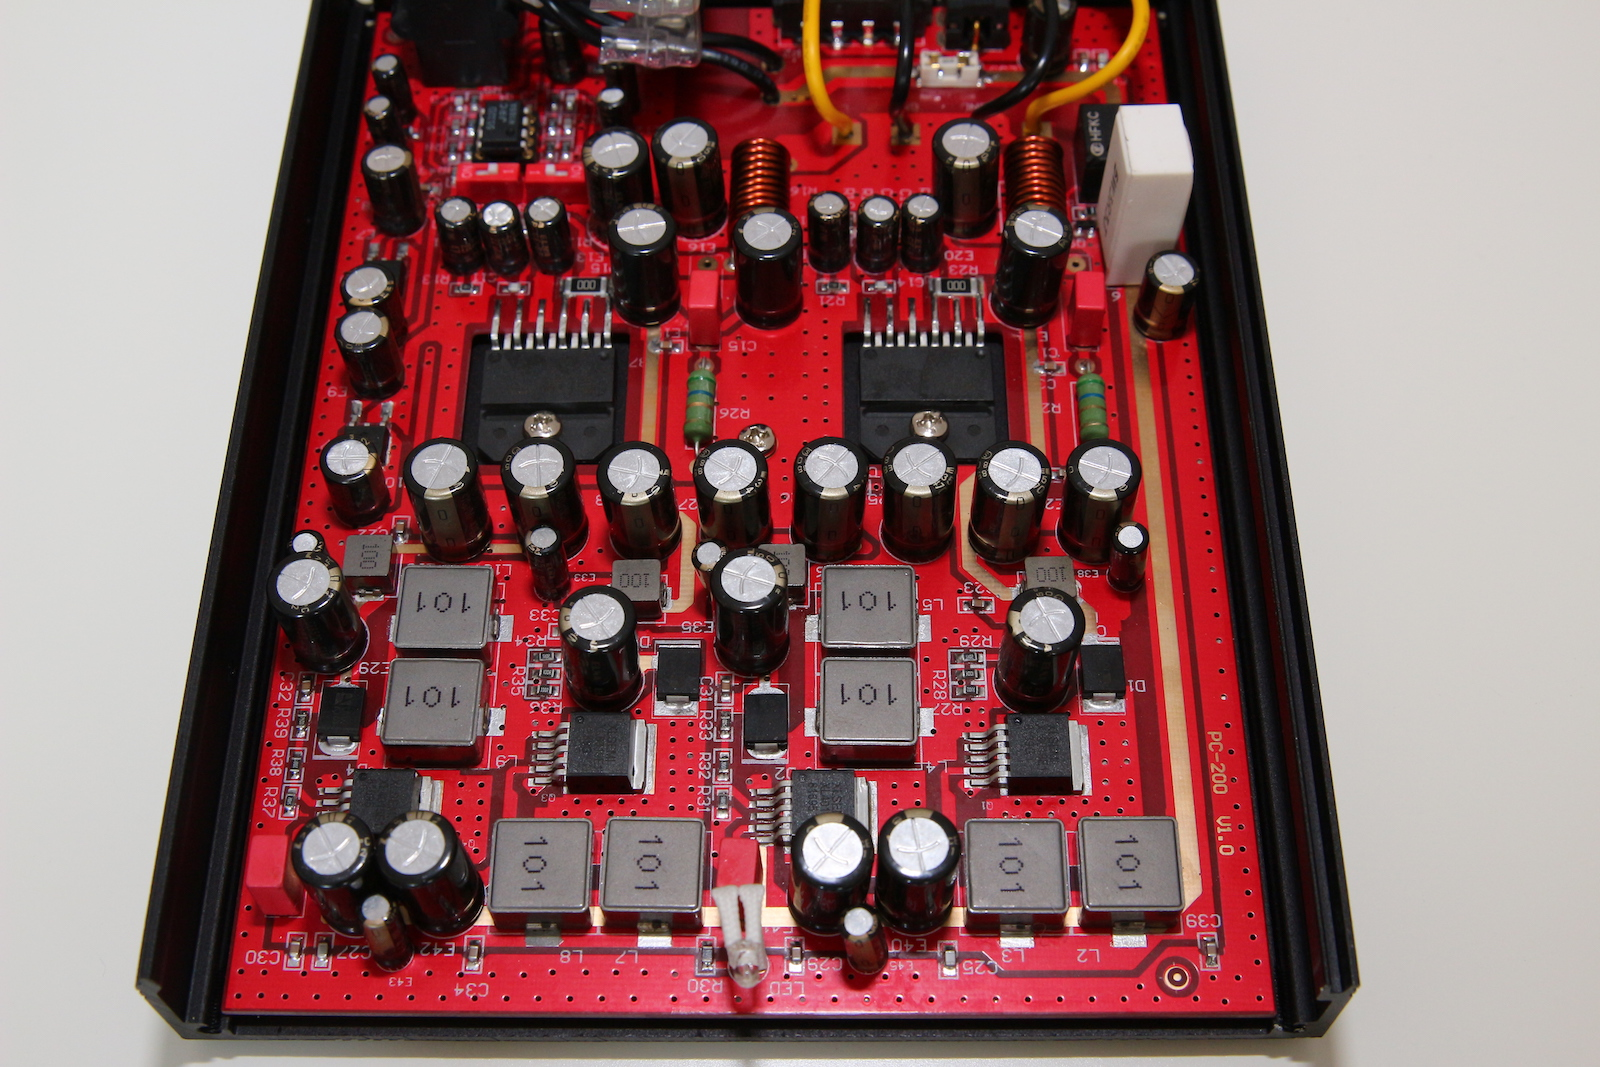 Burson Audio Bang Reviews Headphone And Discussion Circuit Diagram Knowledge 2x40w Two Channel Class Ab Power Img 7969 Performance